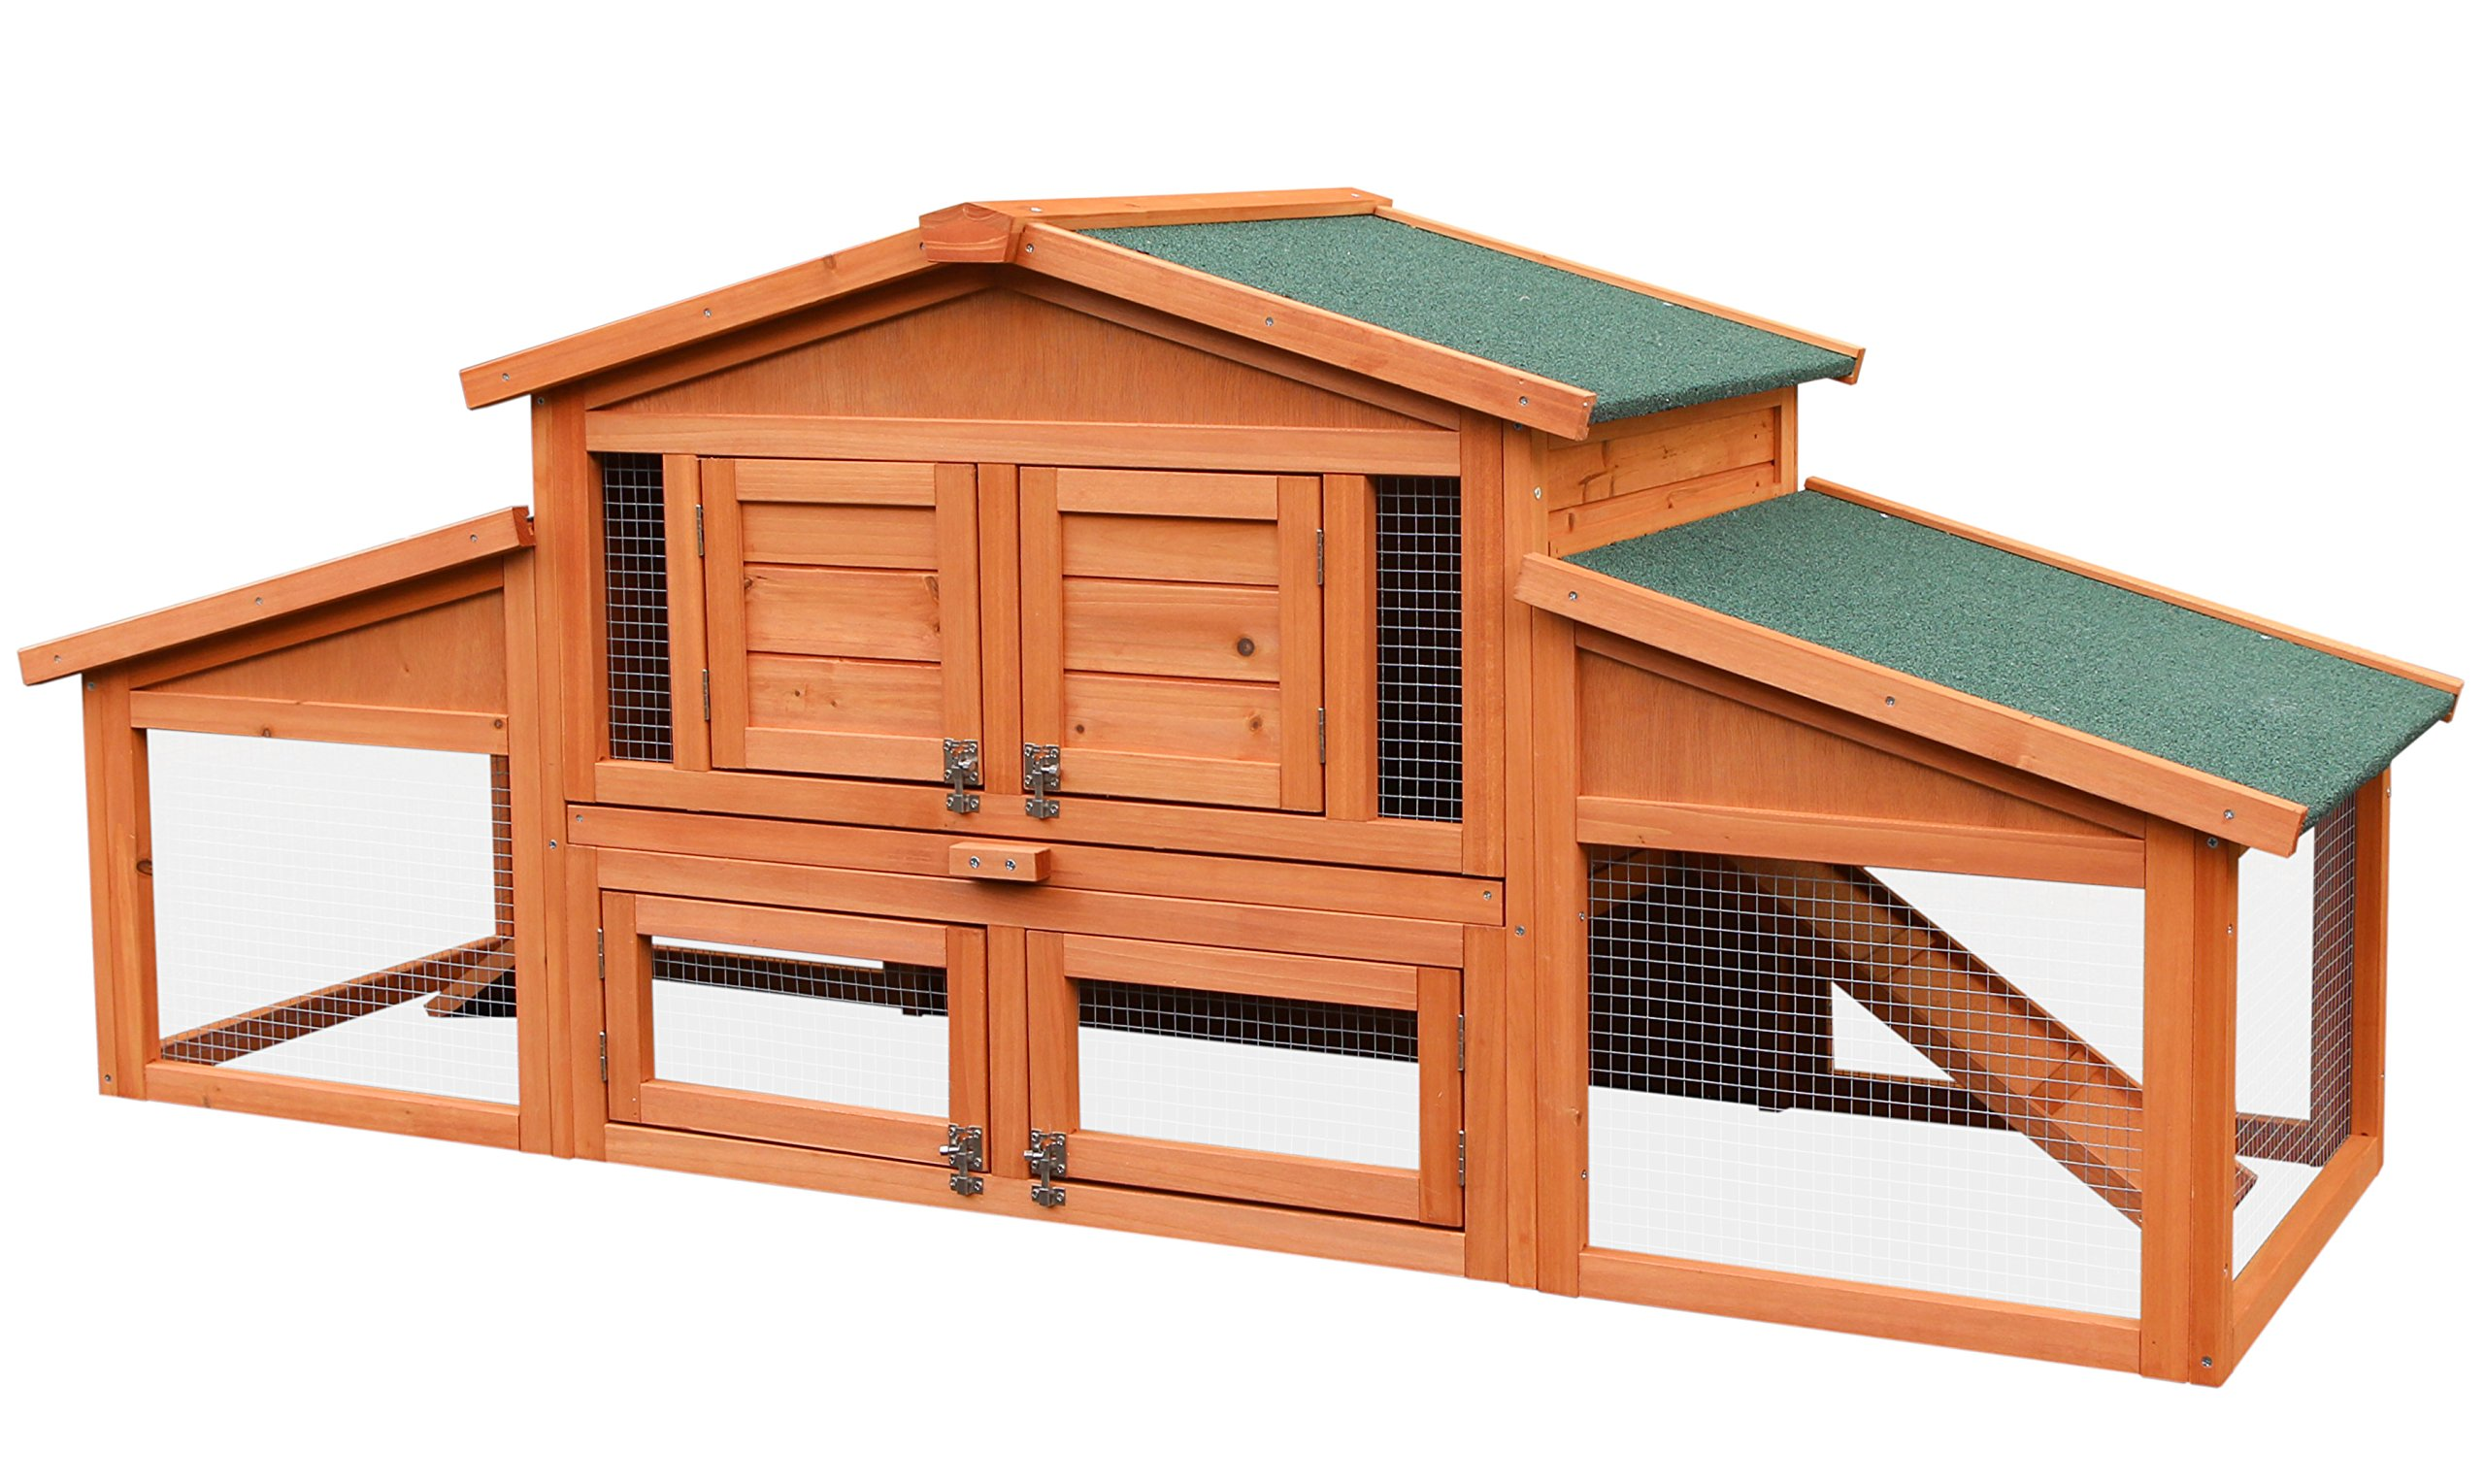 Merax 70-Inch Wooden Rabbit Hutch Outdoor Pet House Cage for Small Animals with 2 Run Play Area